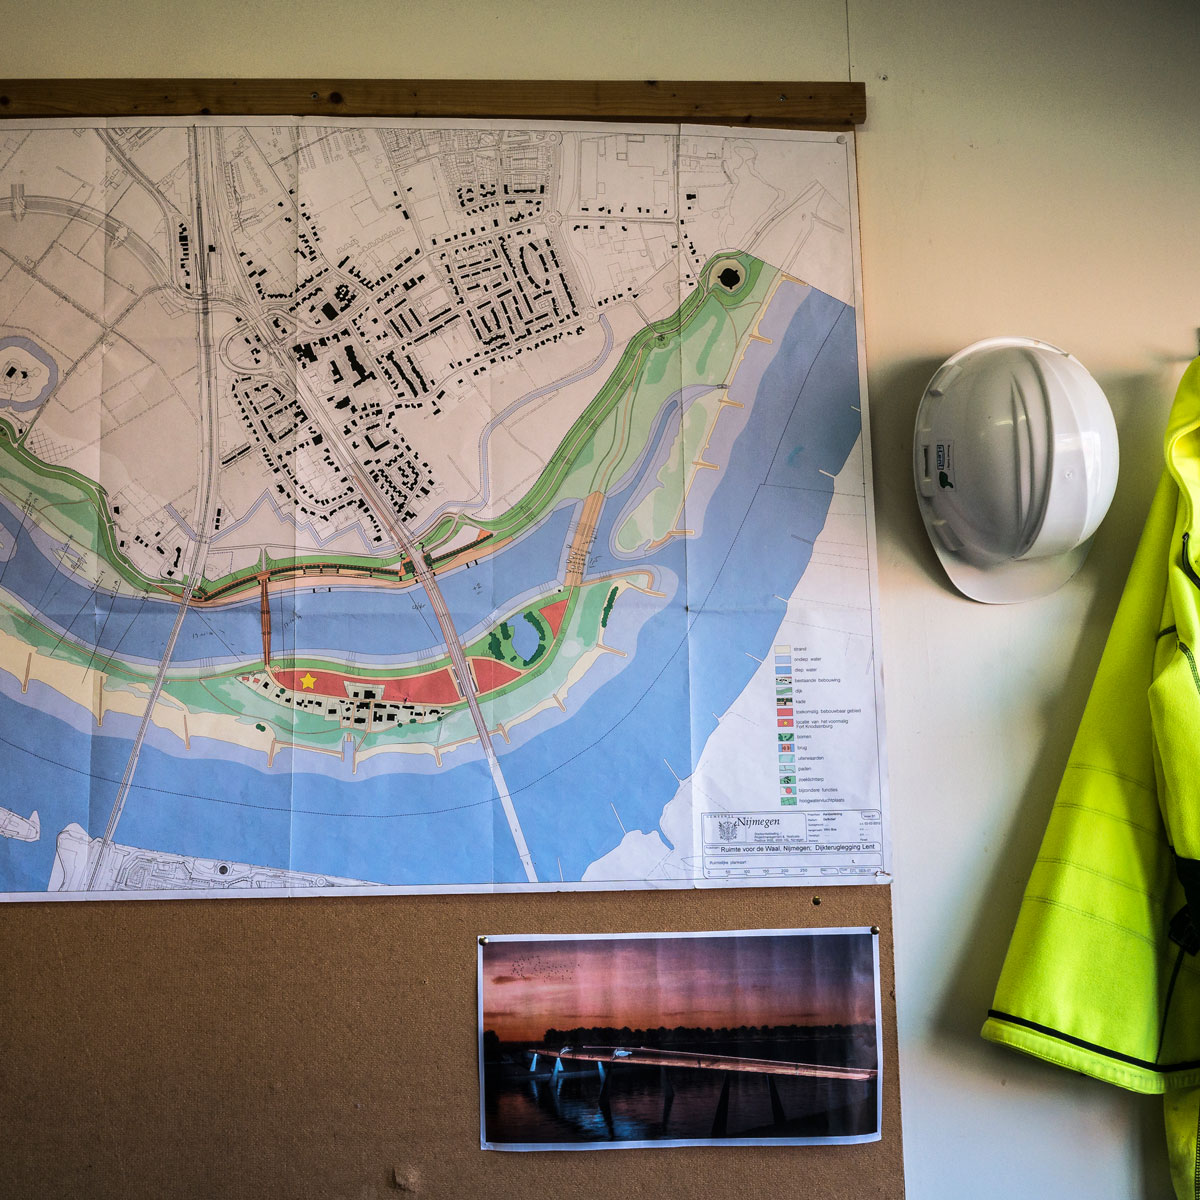 A planning map for the Room for the River project in Nijmegen, the Netherlands.